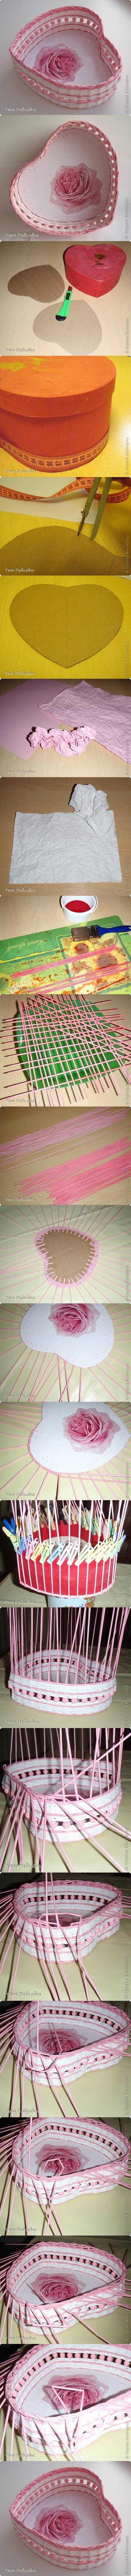 DIY Woven Paper Heart Shaped Basket | iCreativeIdeas.com Follow Us on Facebook --> https://www.facebook.com/icreativeideas